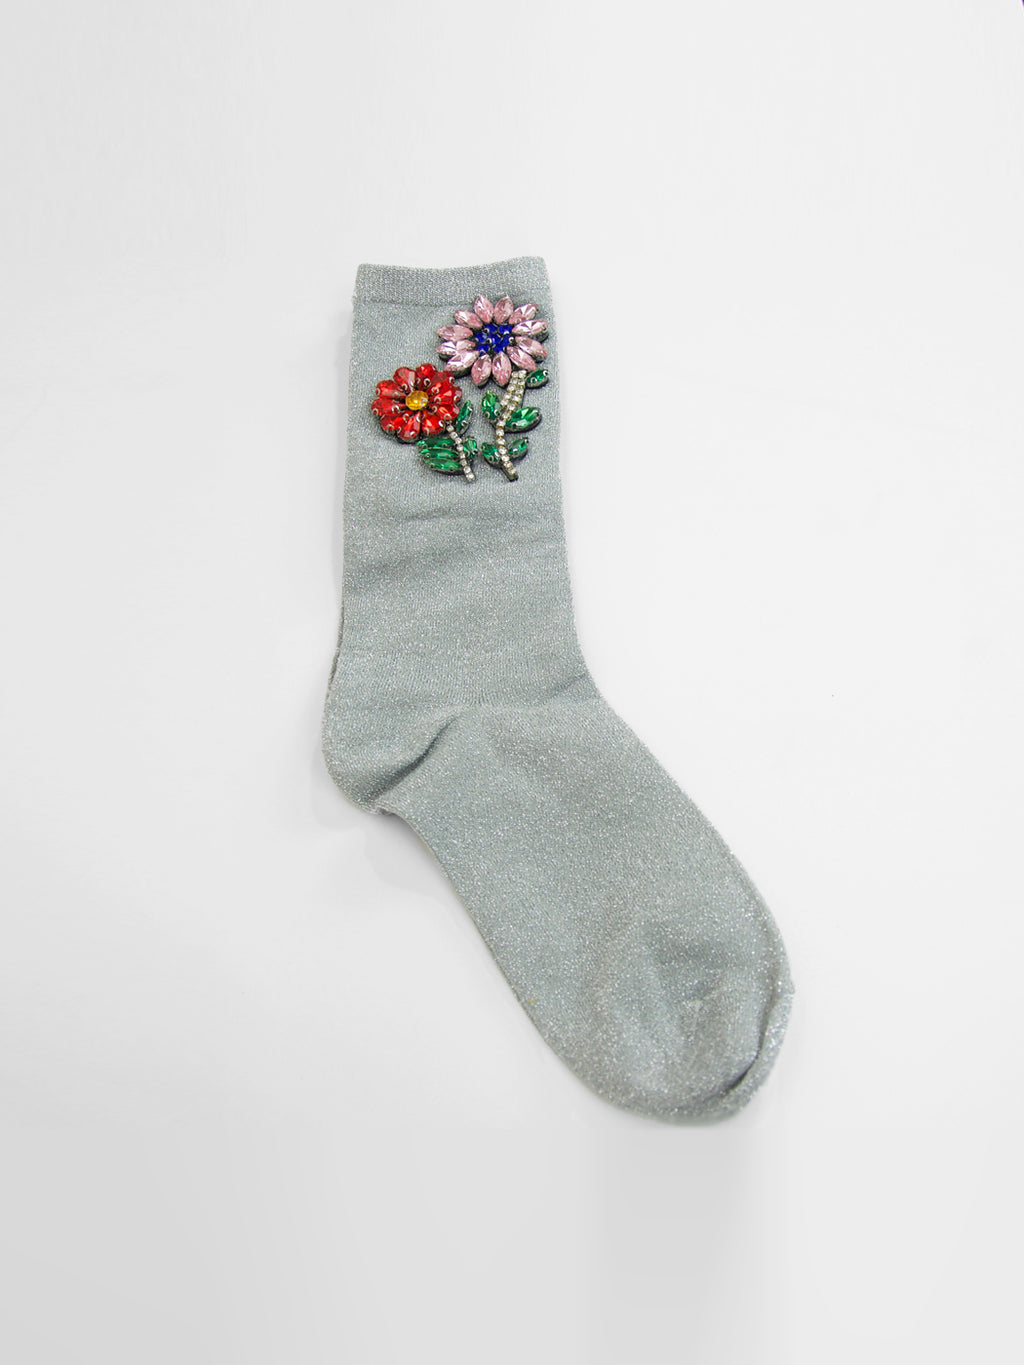 Flower Patch Socks / Silver Sparkle